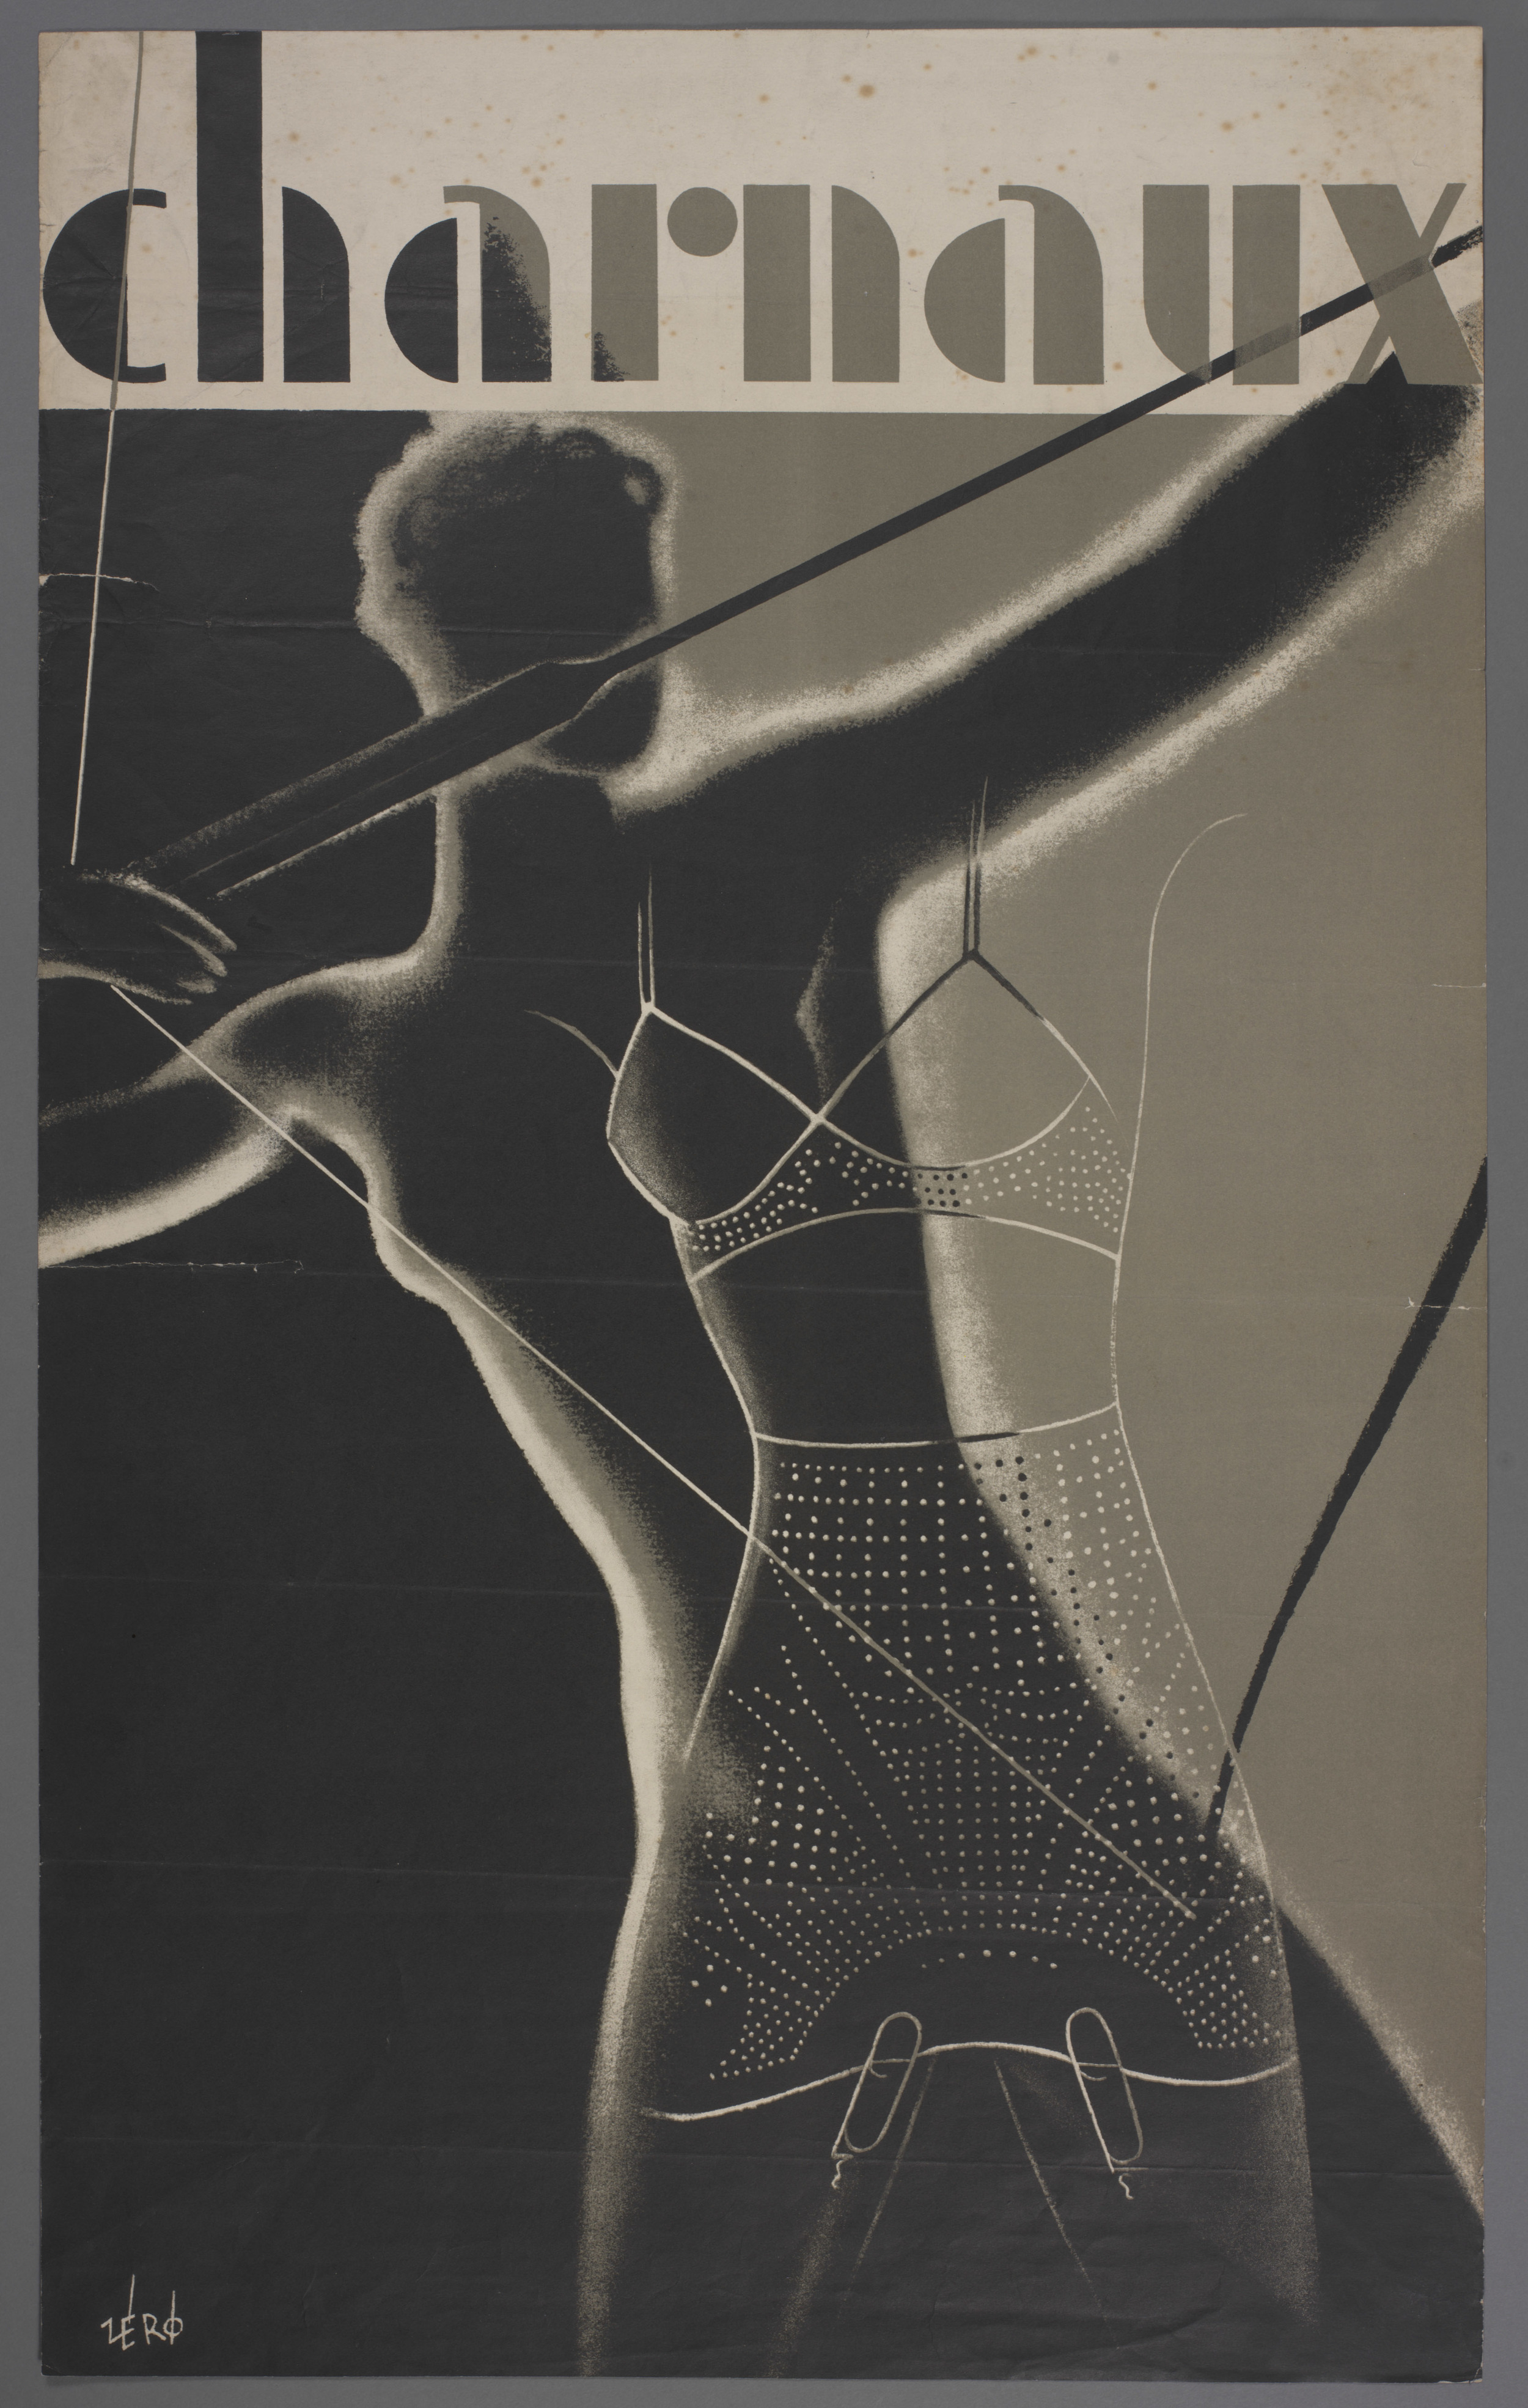 Advertising poster designed by Hans Schleger for the Charnaux Patent Corset Co. Ltd. c. 193